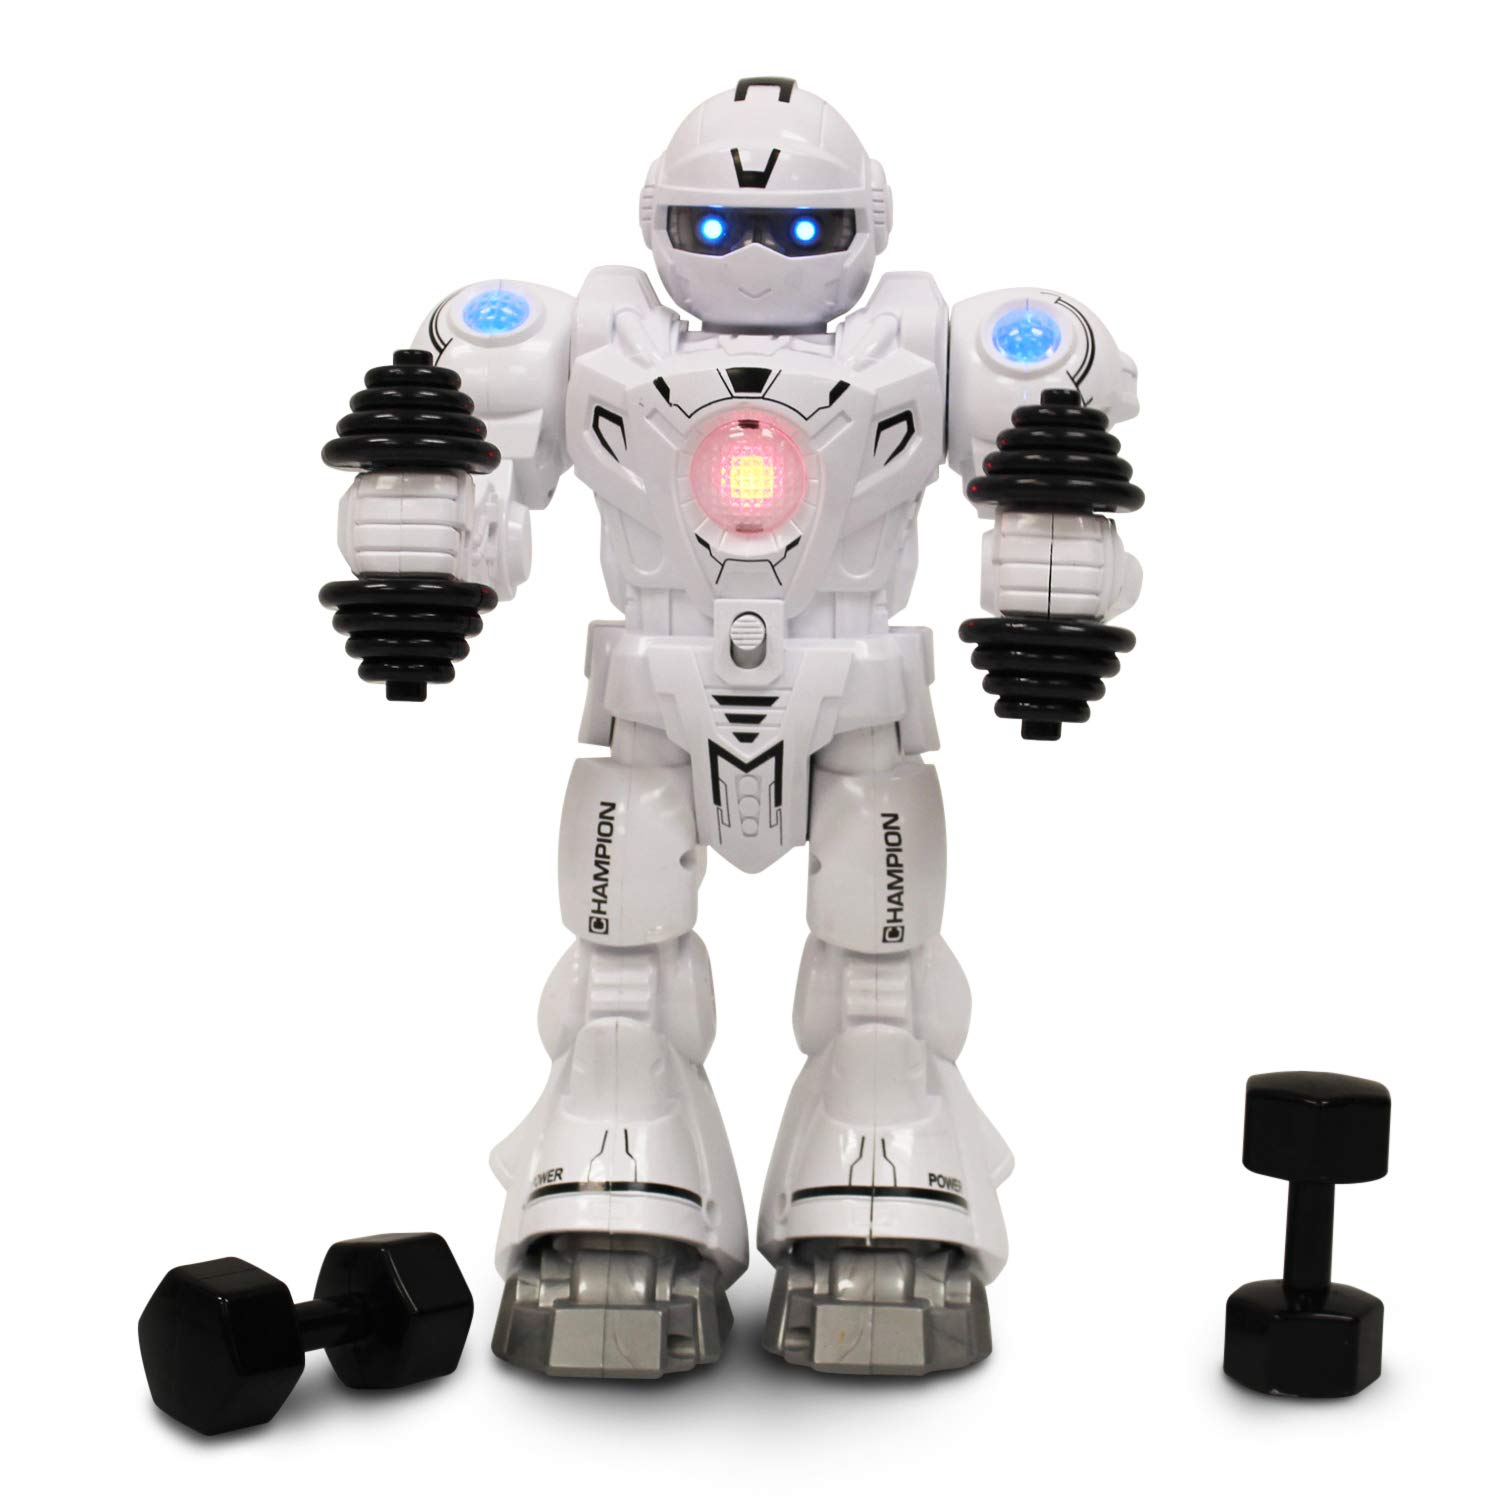 Athletic Robot for Kids RC Intelligent Robot Walks Does Push Ups Biceps Exercises with LED Lights on Head Arms Chest Workout Music for Kids Entertainment White